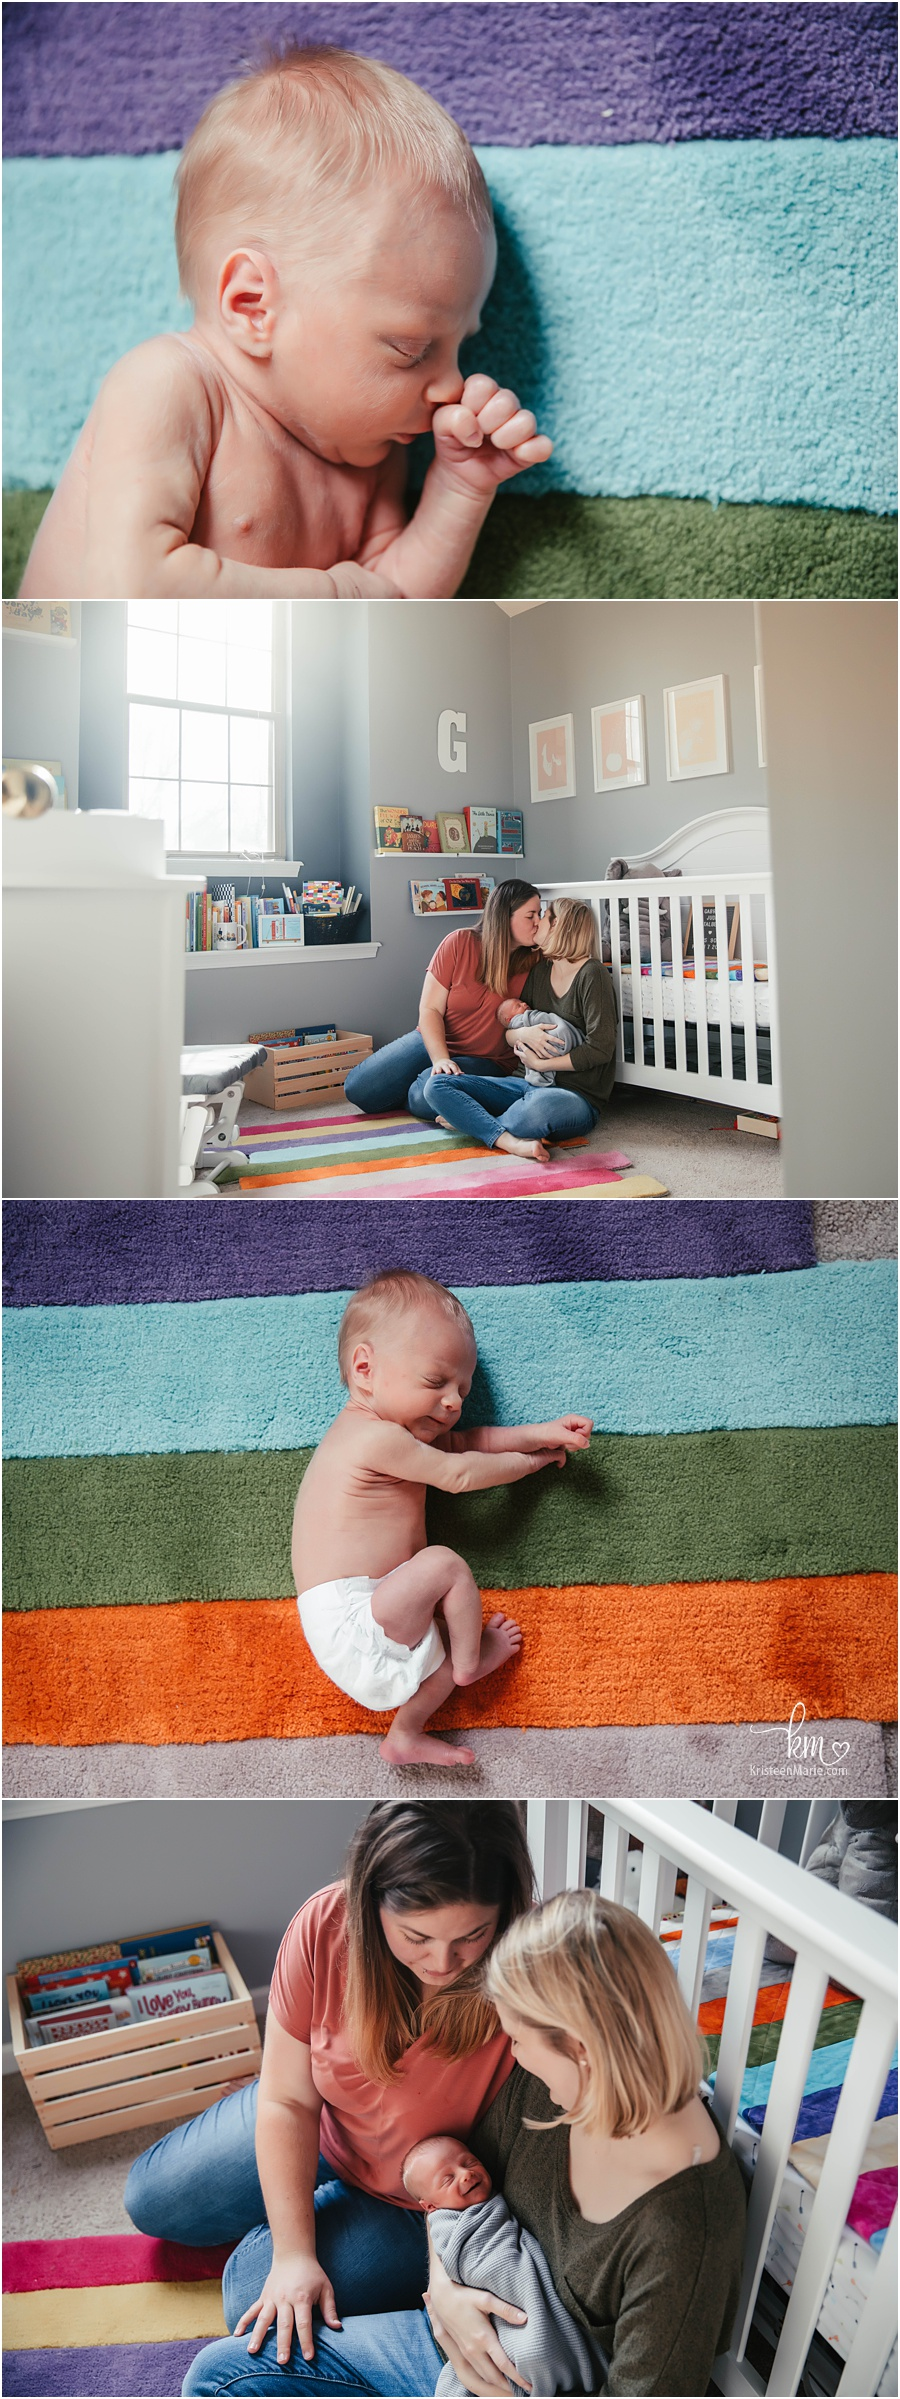 moms in ranbow themed nursery with newborn baby boy